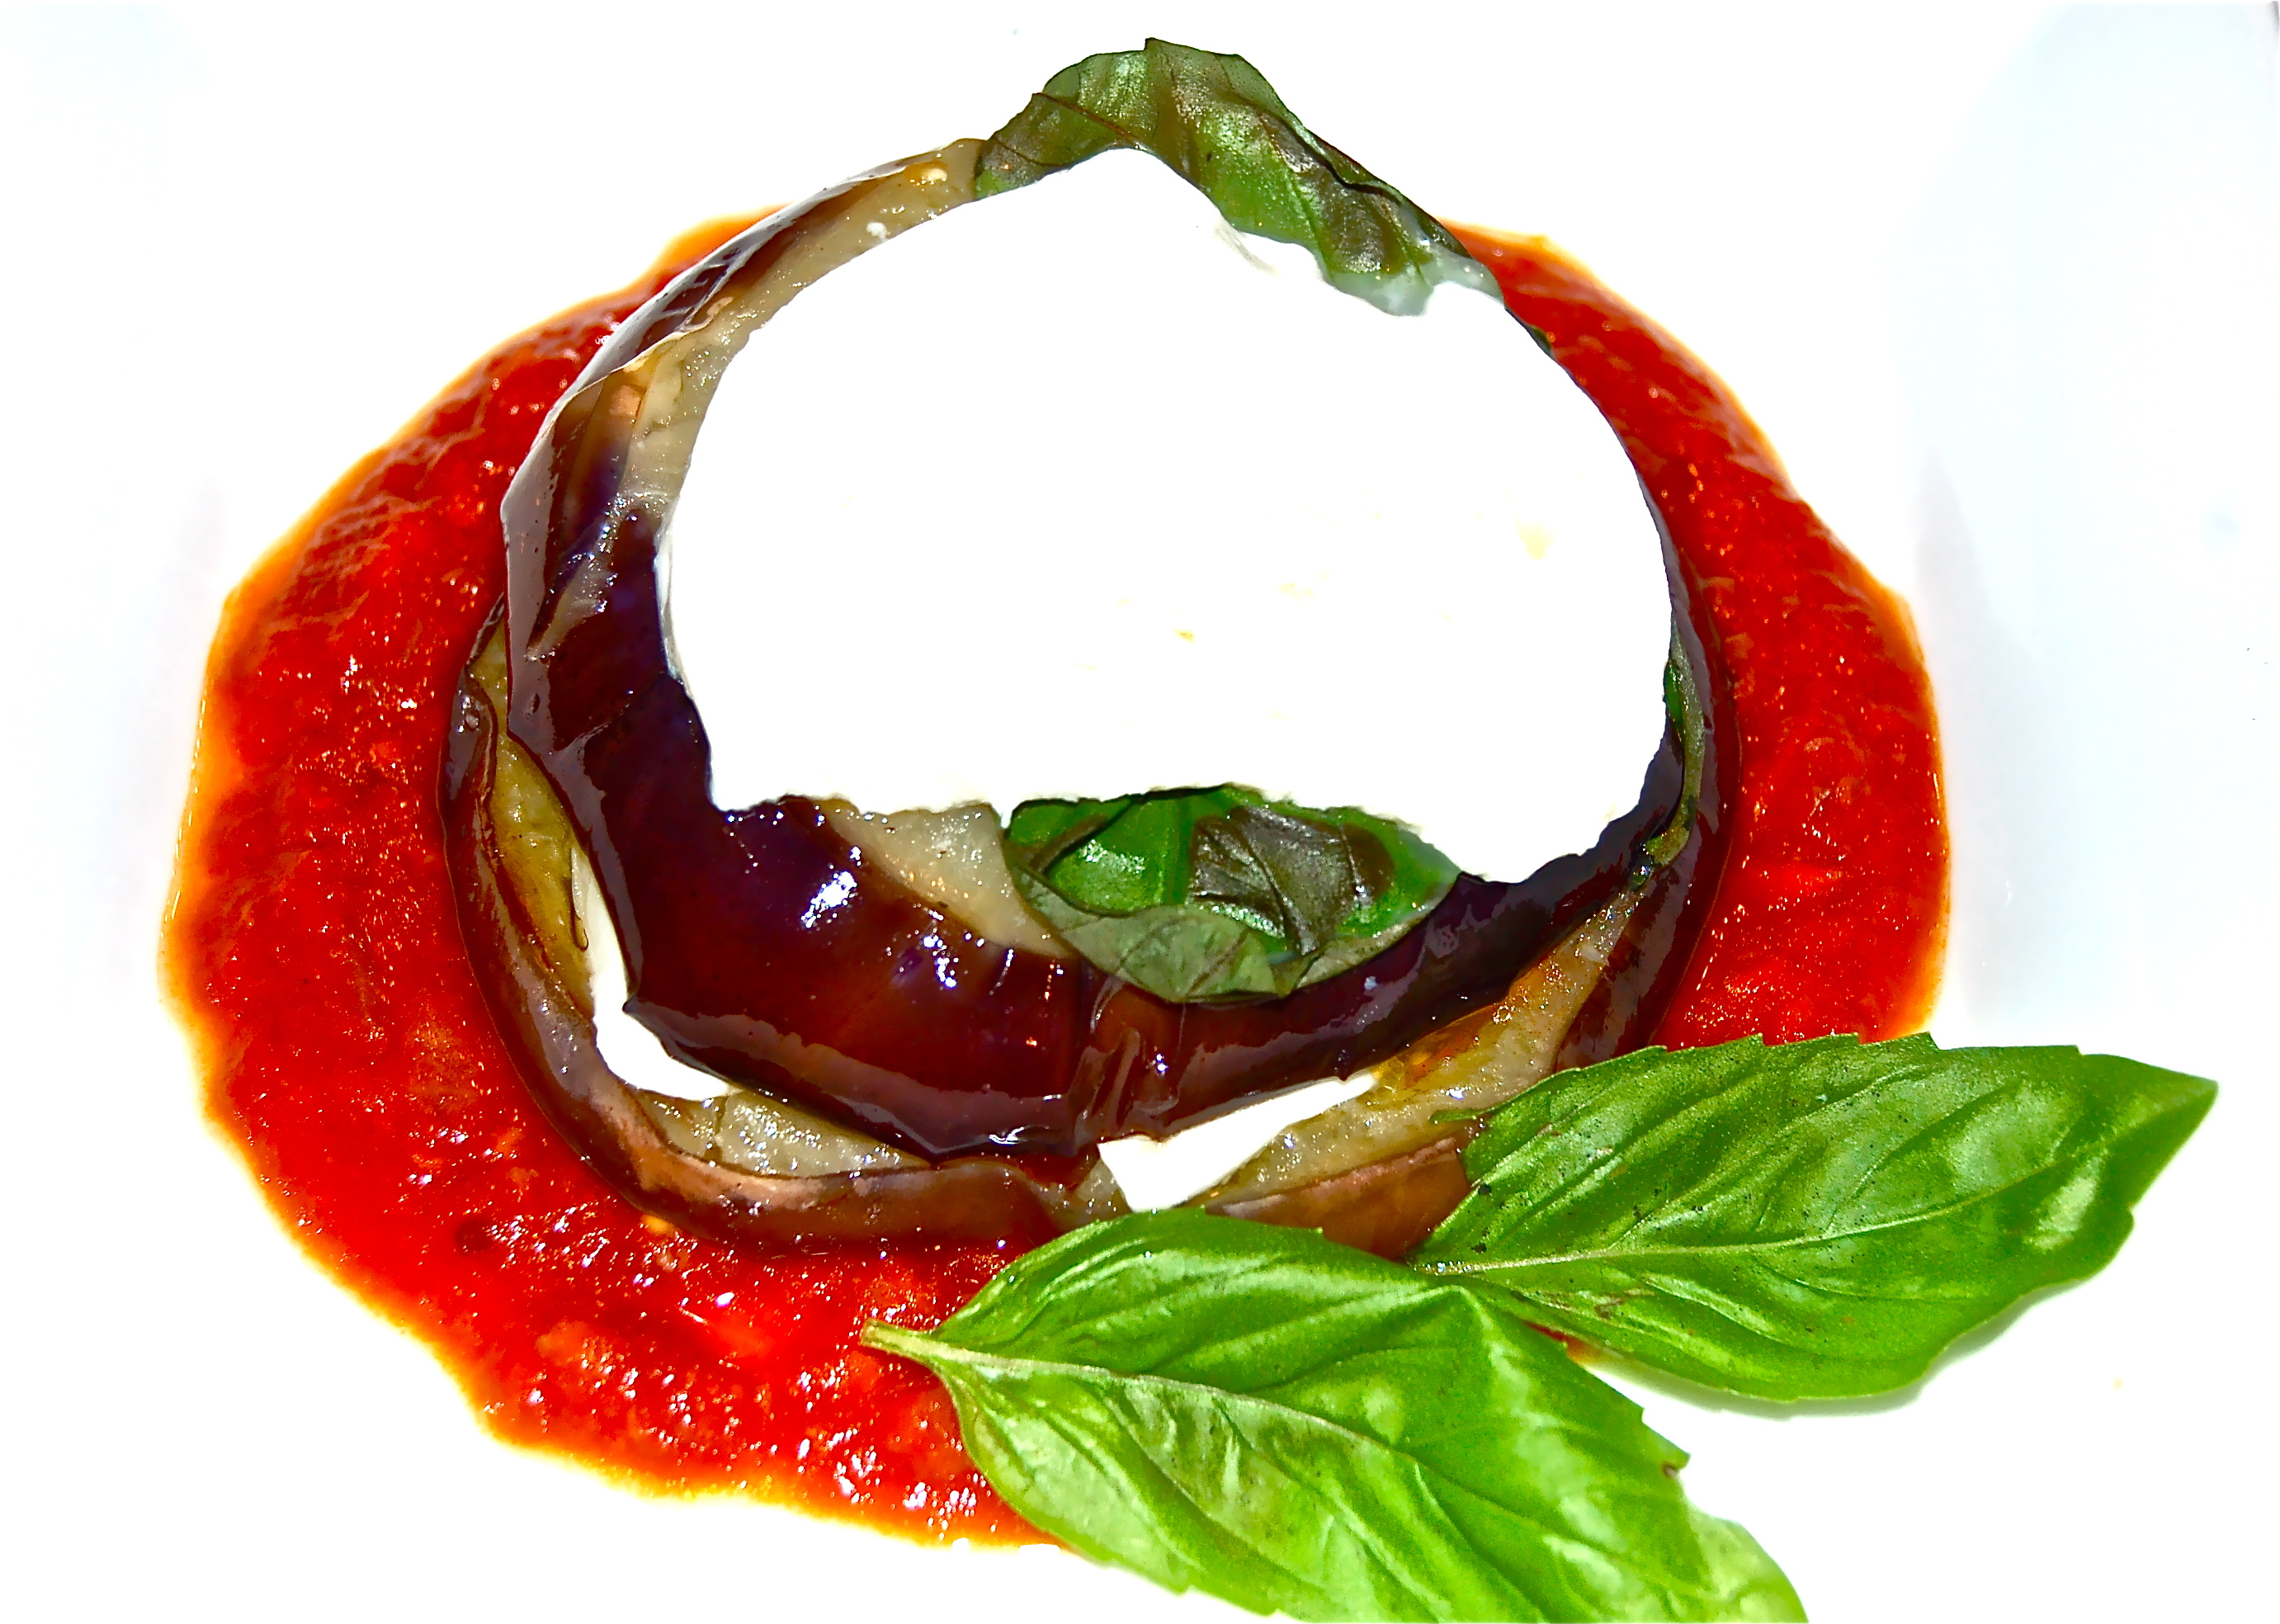 A Napoleon of Roasted Eggplant, Mozzarella, Basil Leaves  Tomato